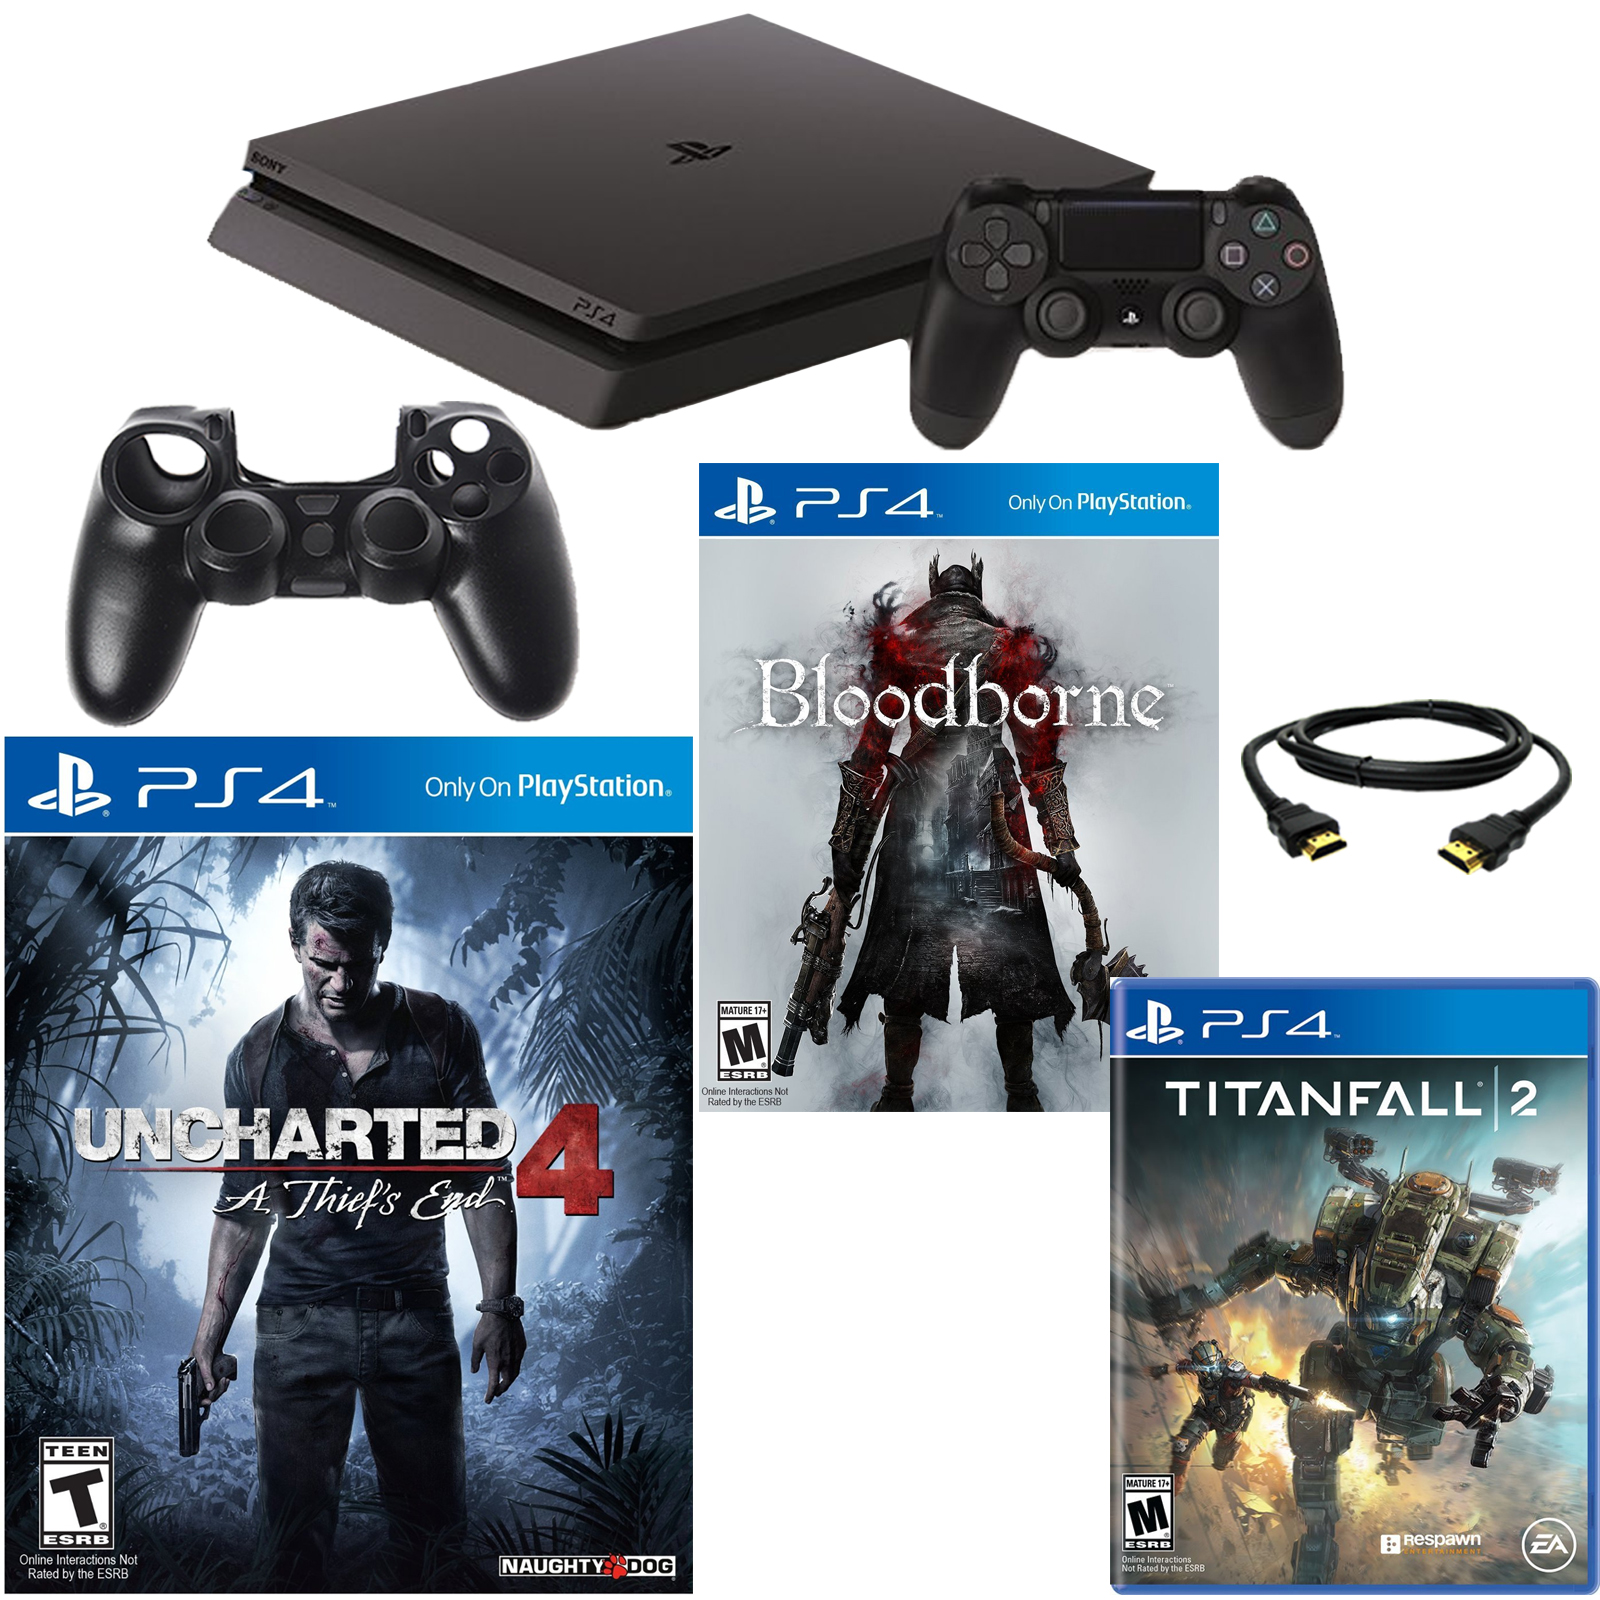 PlayStation 4 Slim 500GB Uncharted 4 Console with Titanfall 2, Bloodborne & Accessories